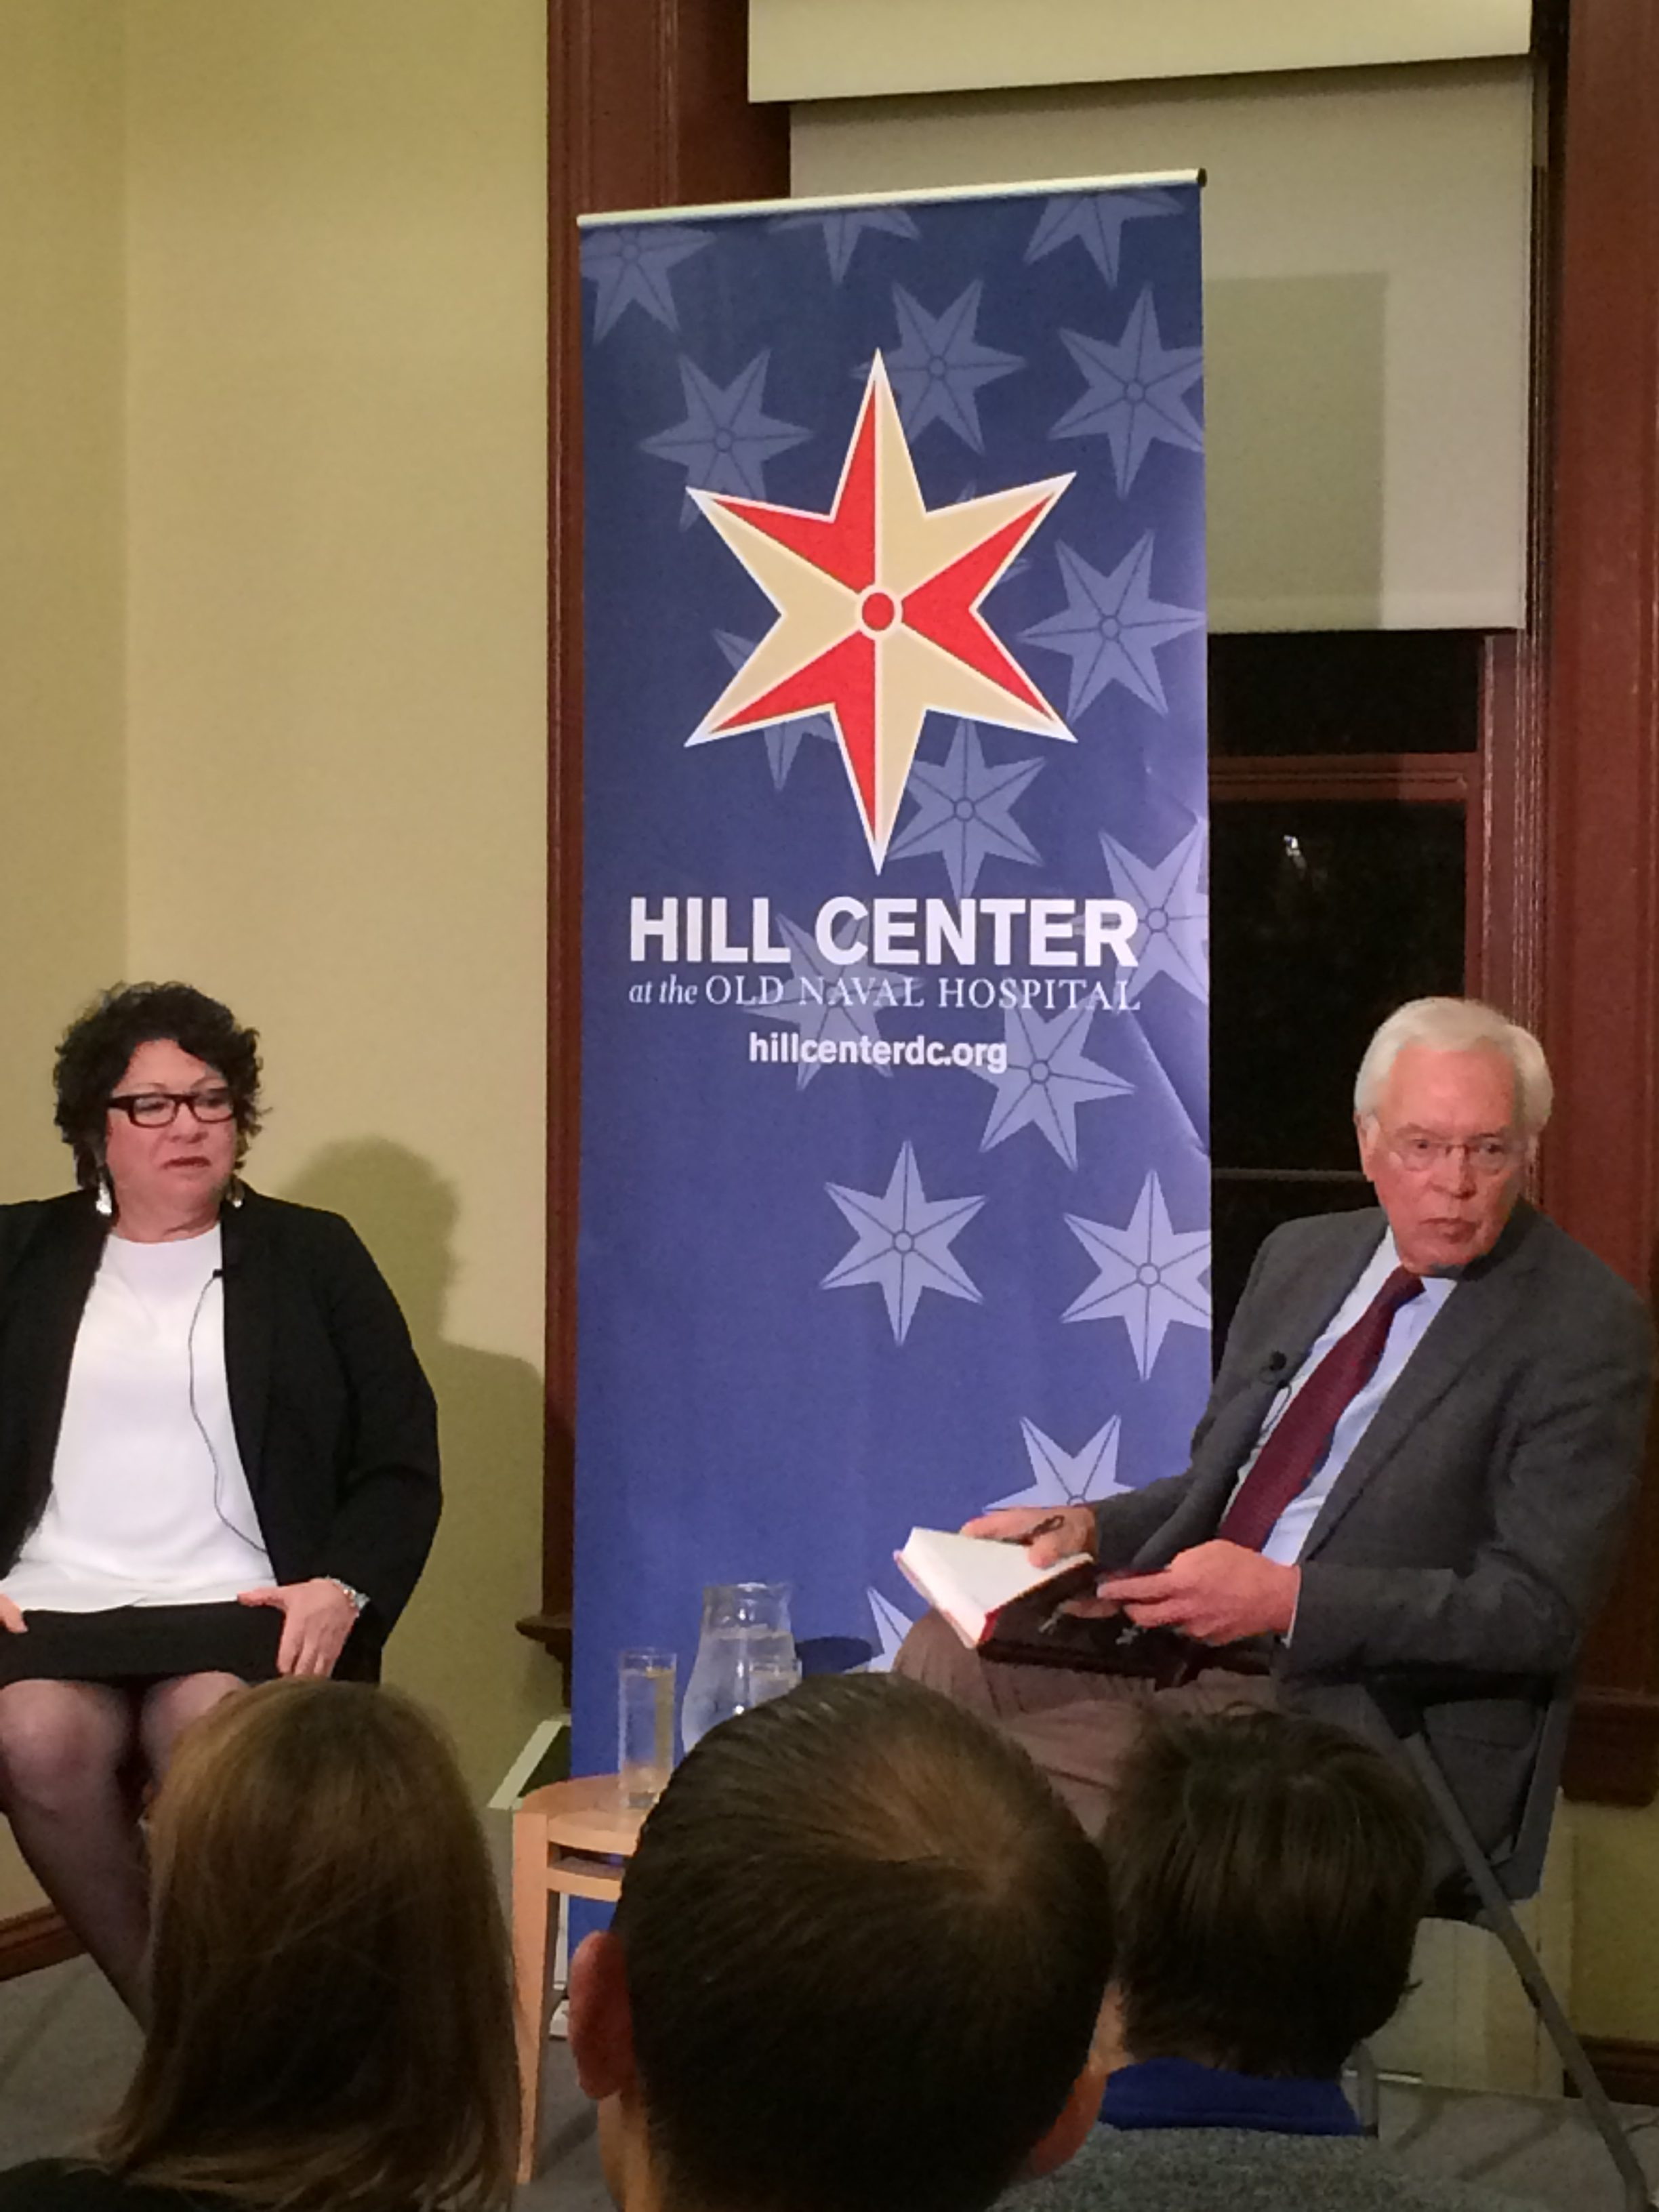 Supreme Court Justice Sonia Sotomayor and Bill Press